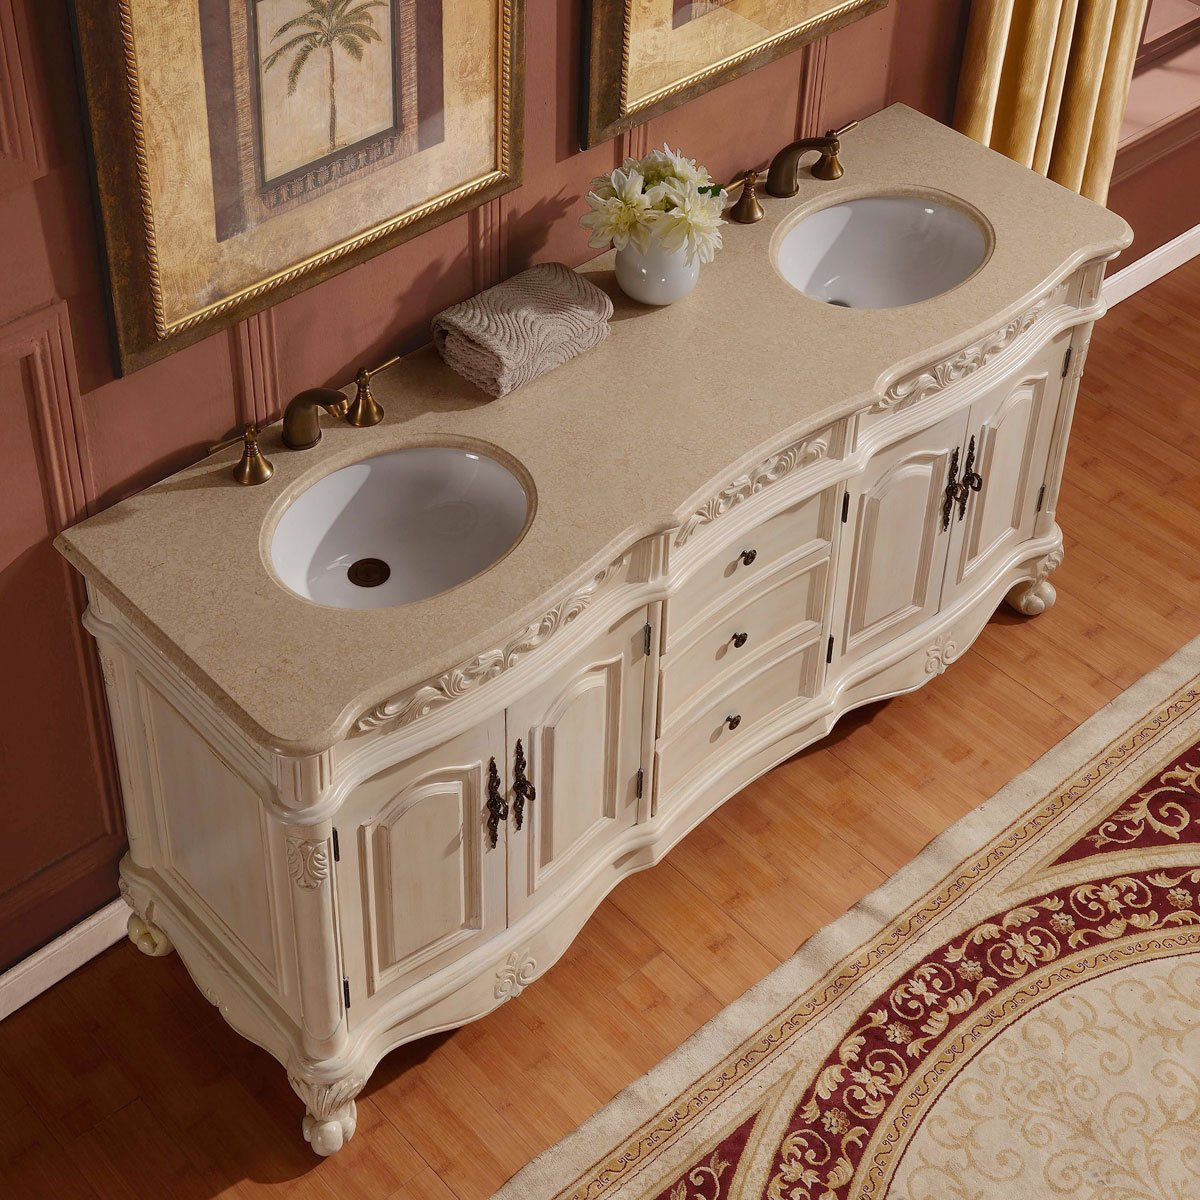 Silkroad Exclusive Countertop Marble Stone Double Sink Bathroom Vanity with Cabinet, 72-Inch by Silkroad Exclusive (Image #2)